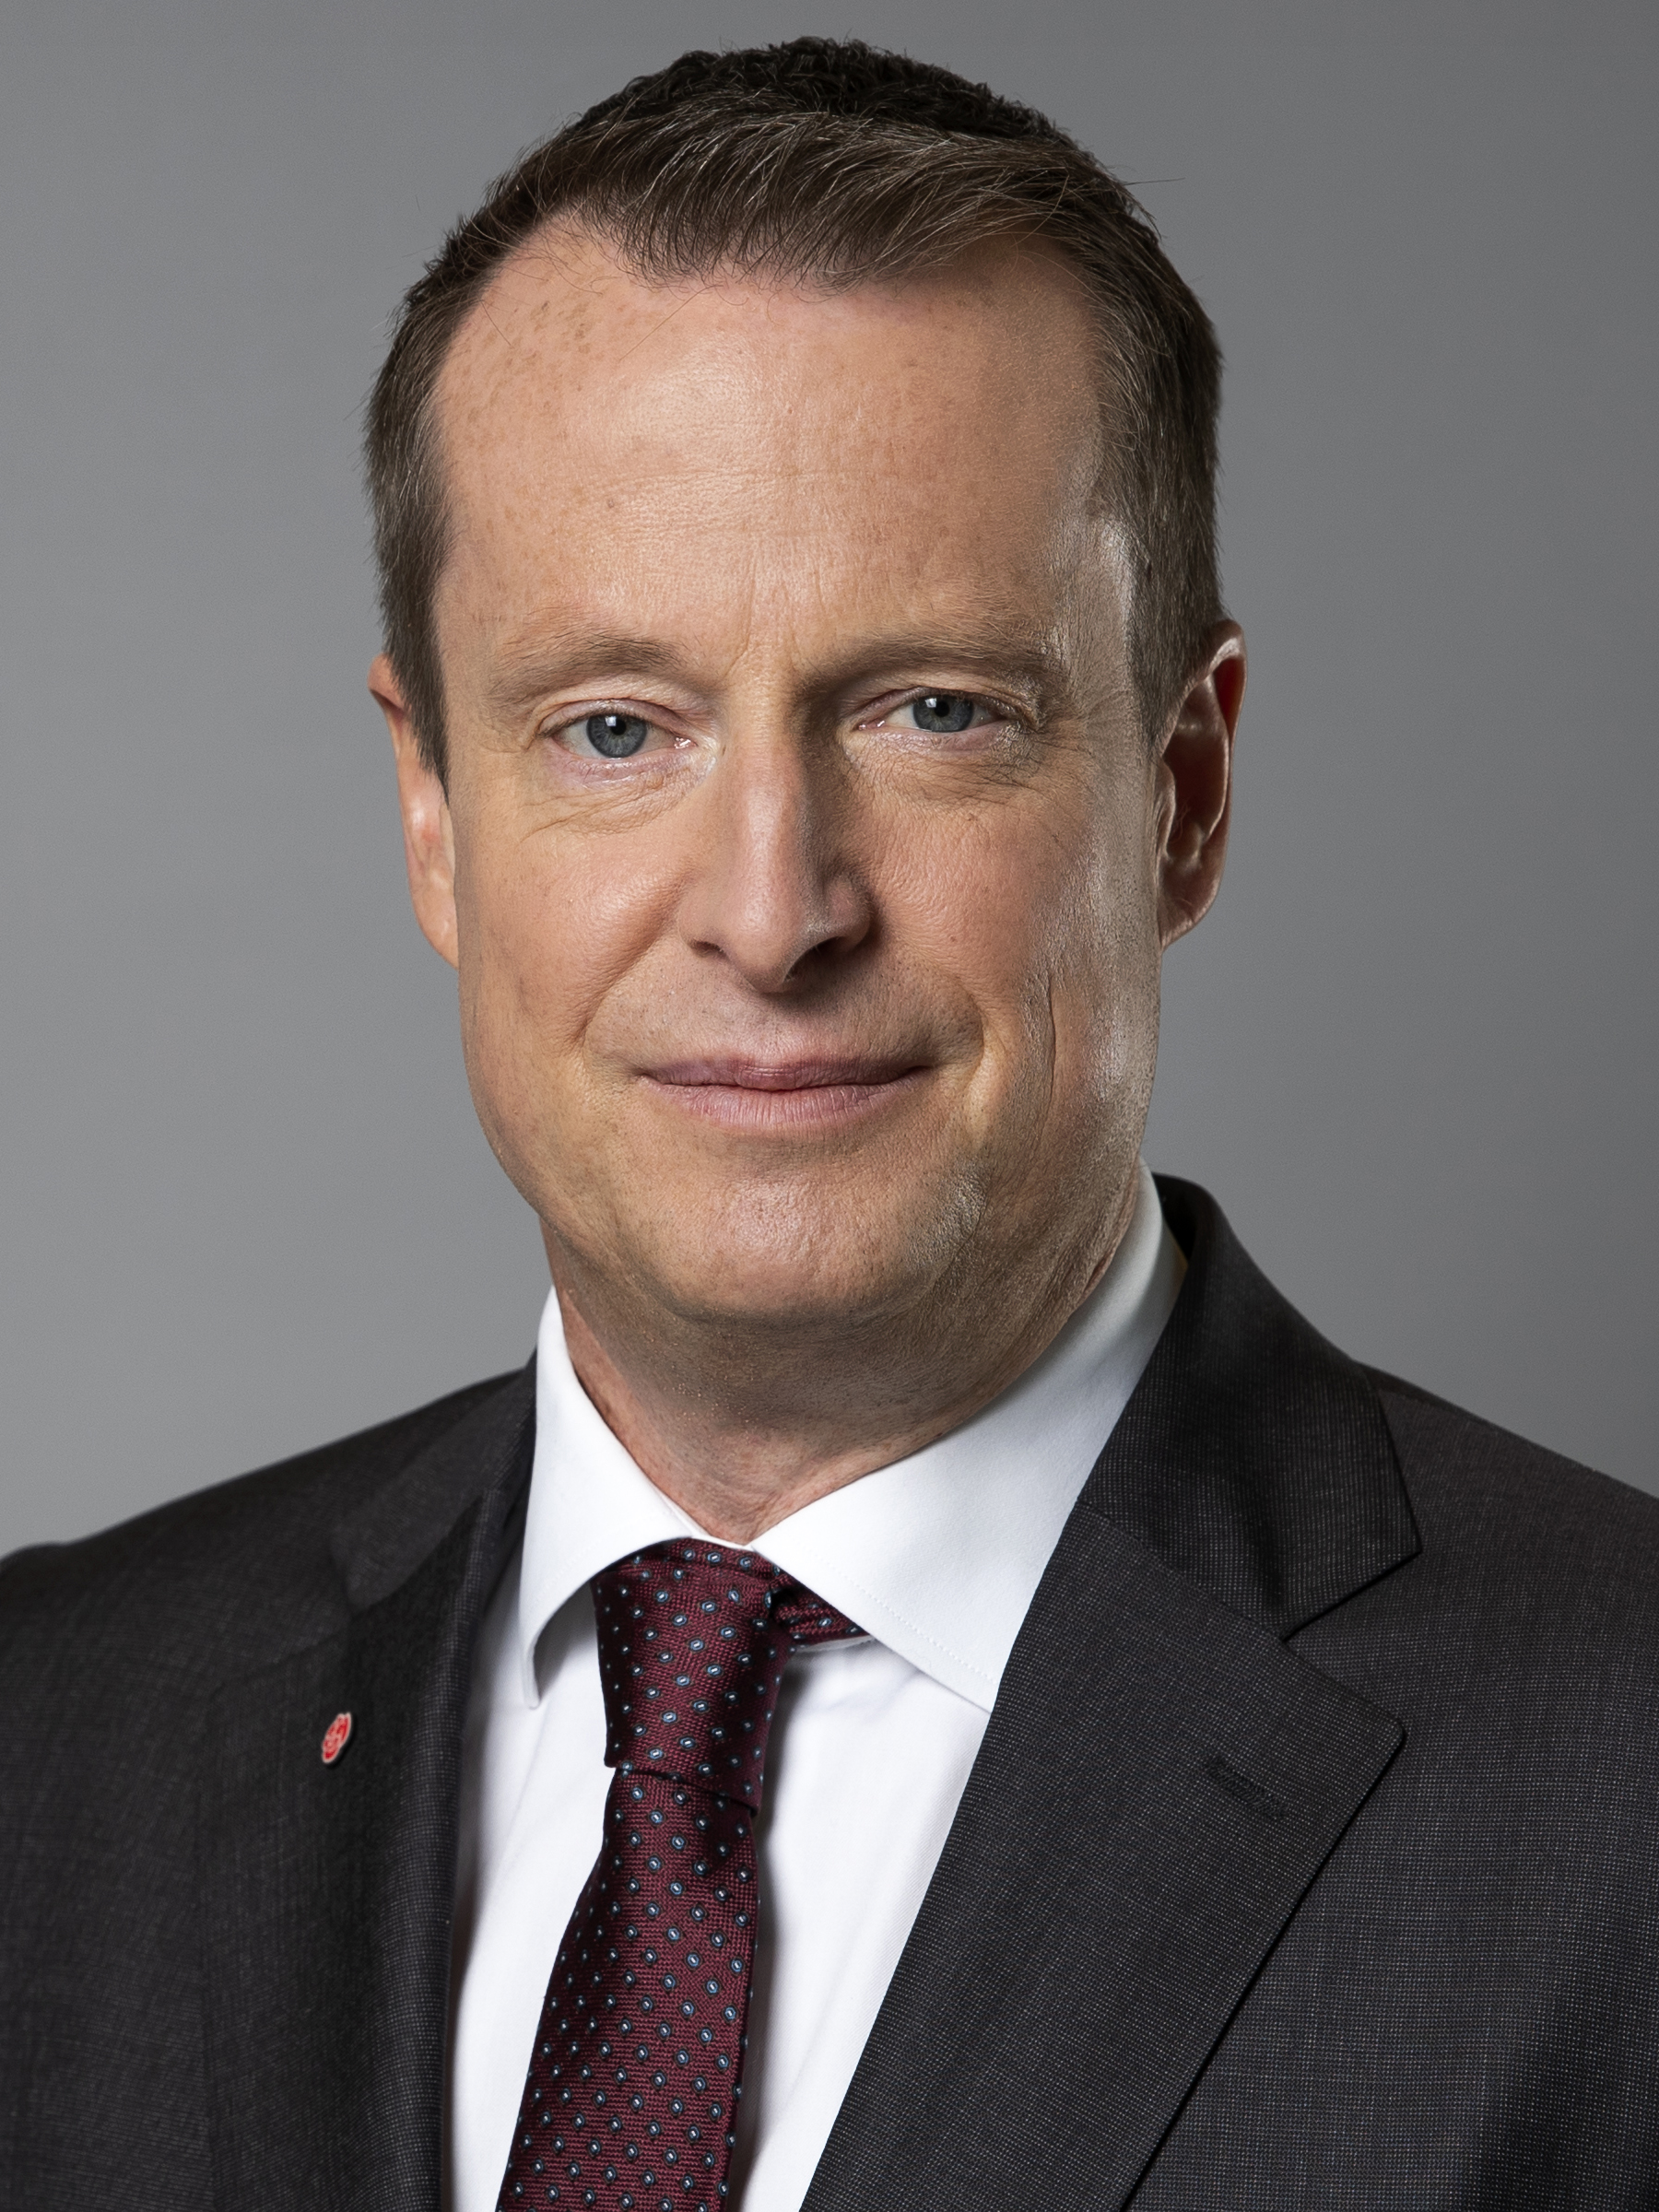 Minister for Energy and Digital Development's portrait.